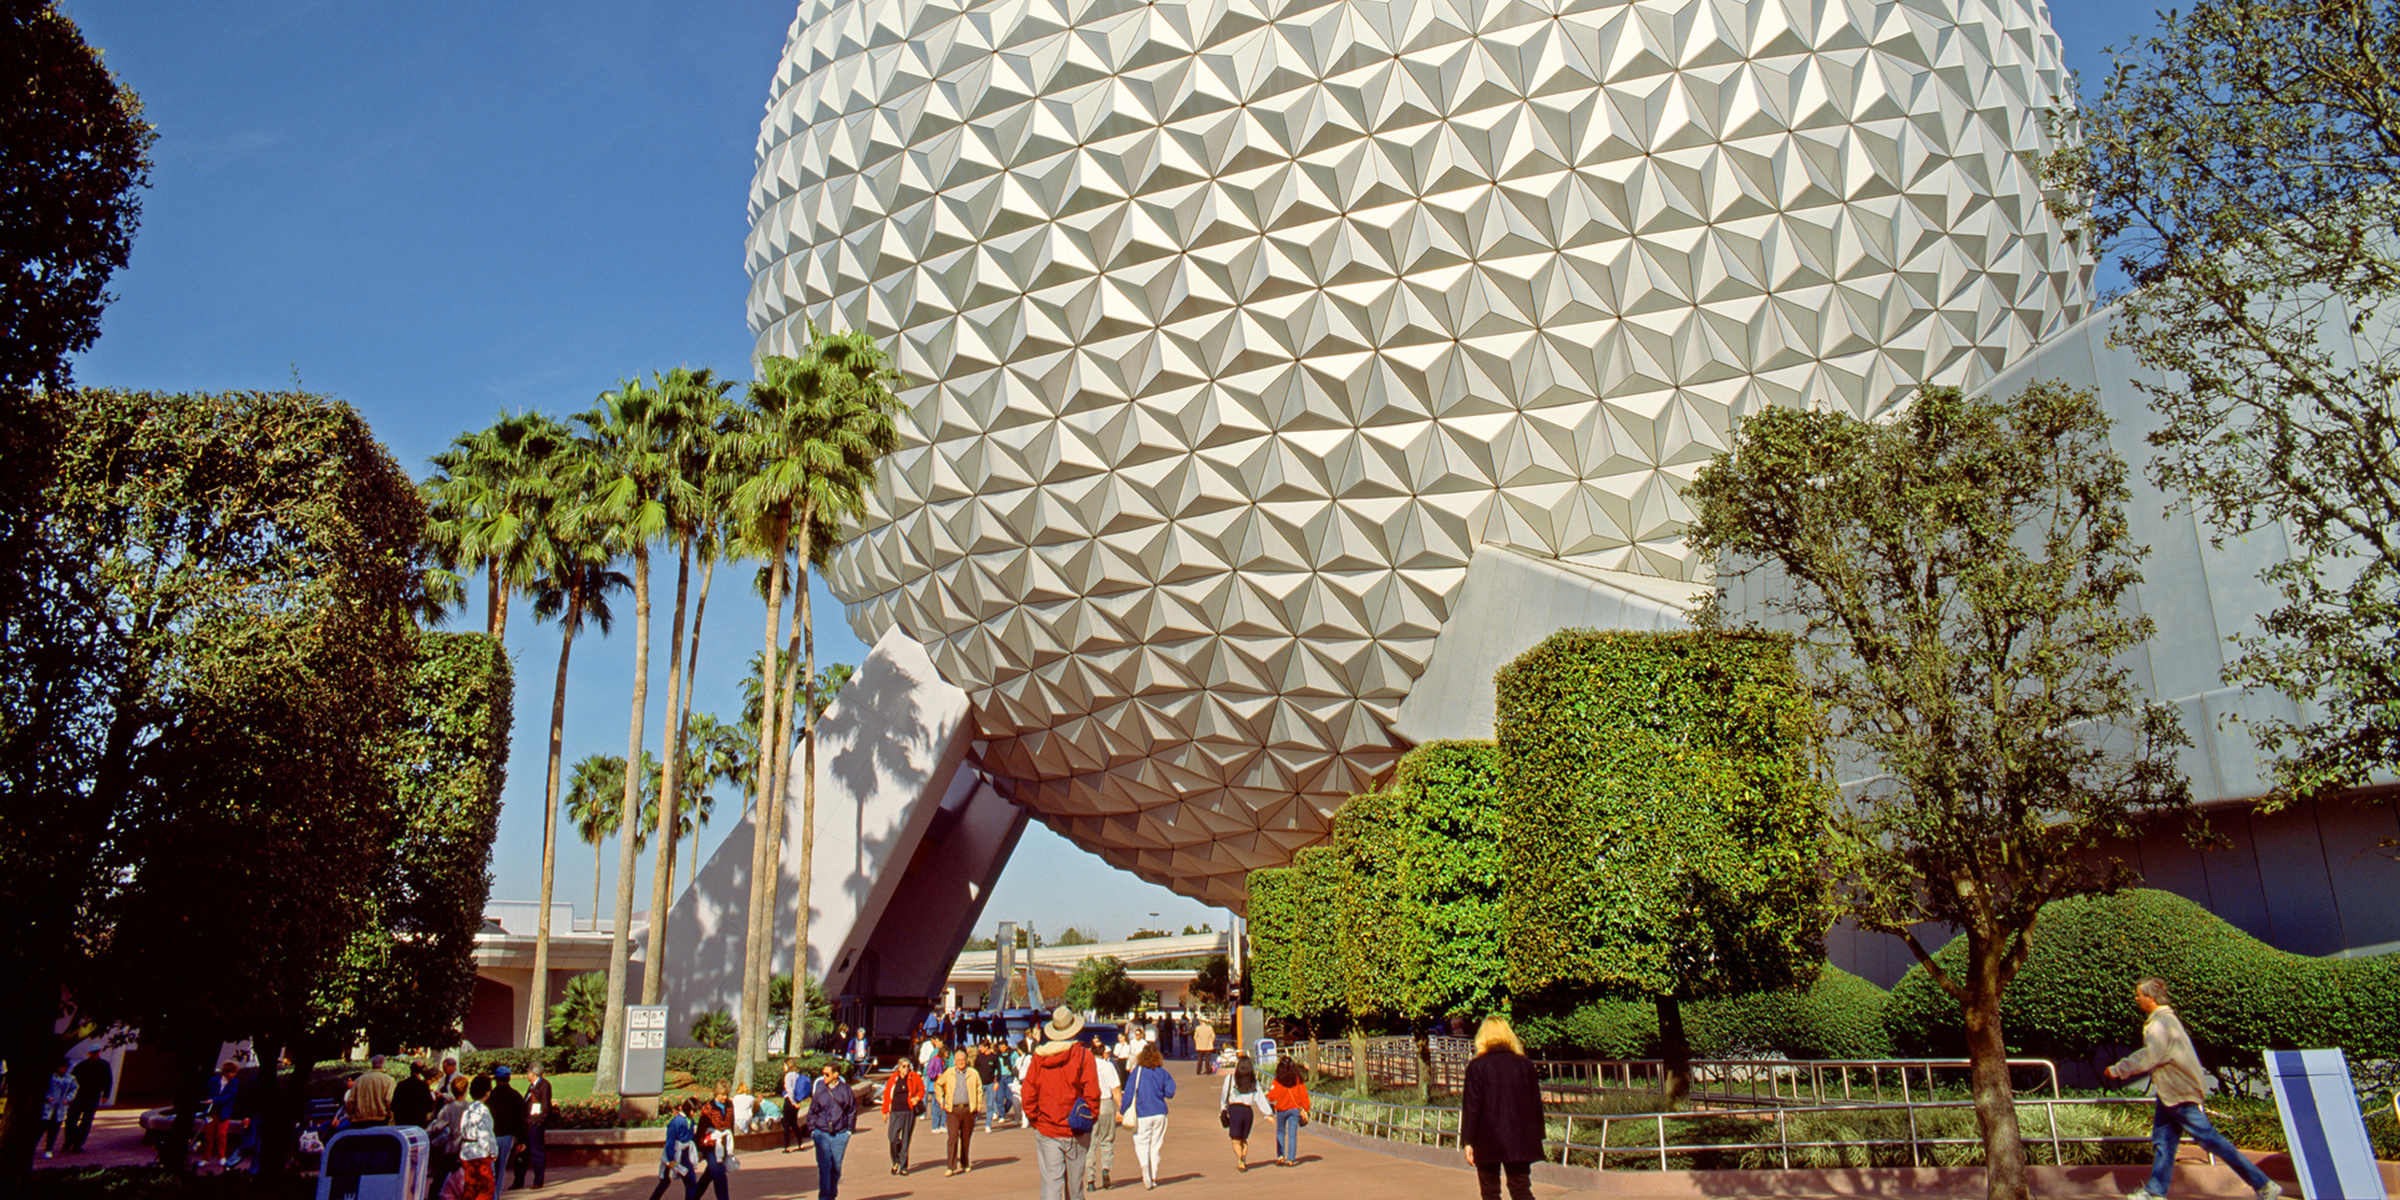 Rabies alert issued for part of Walt Disney World after feral cat scratches employees